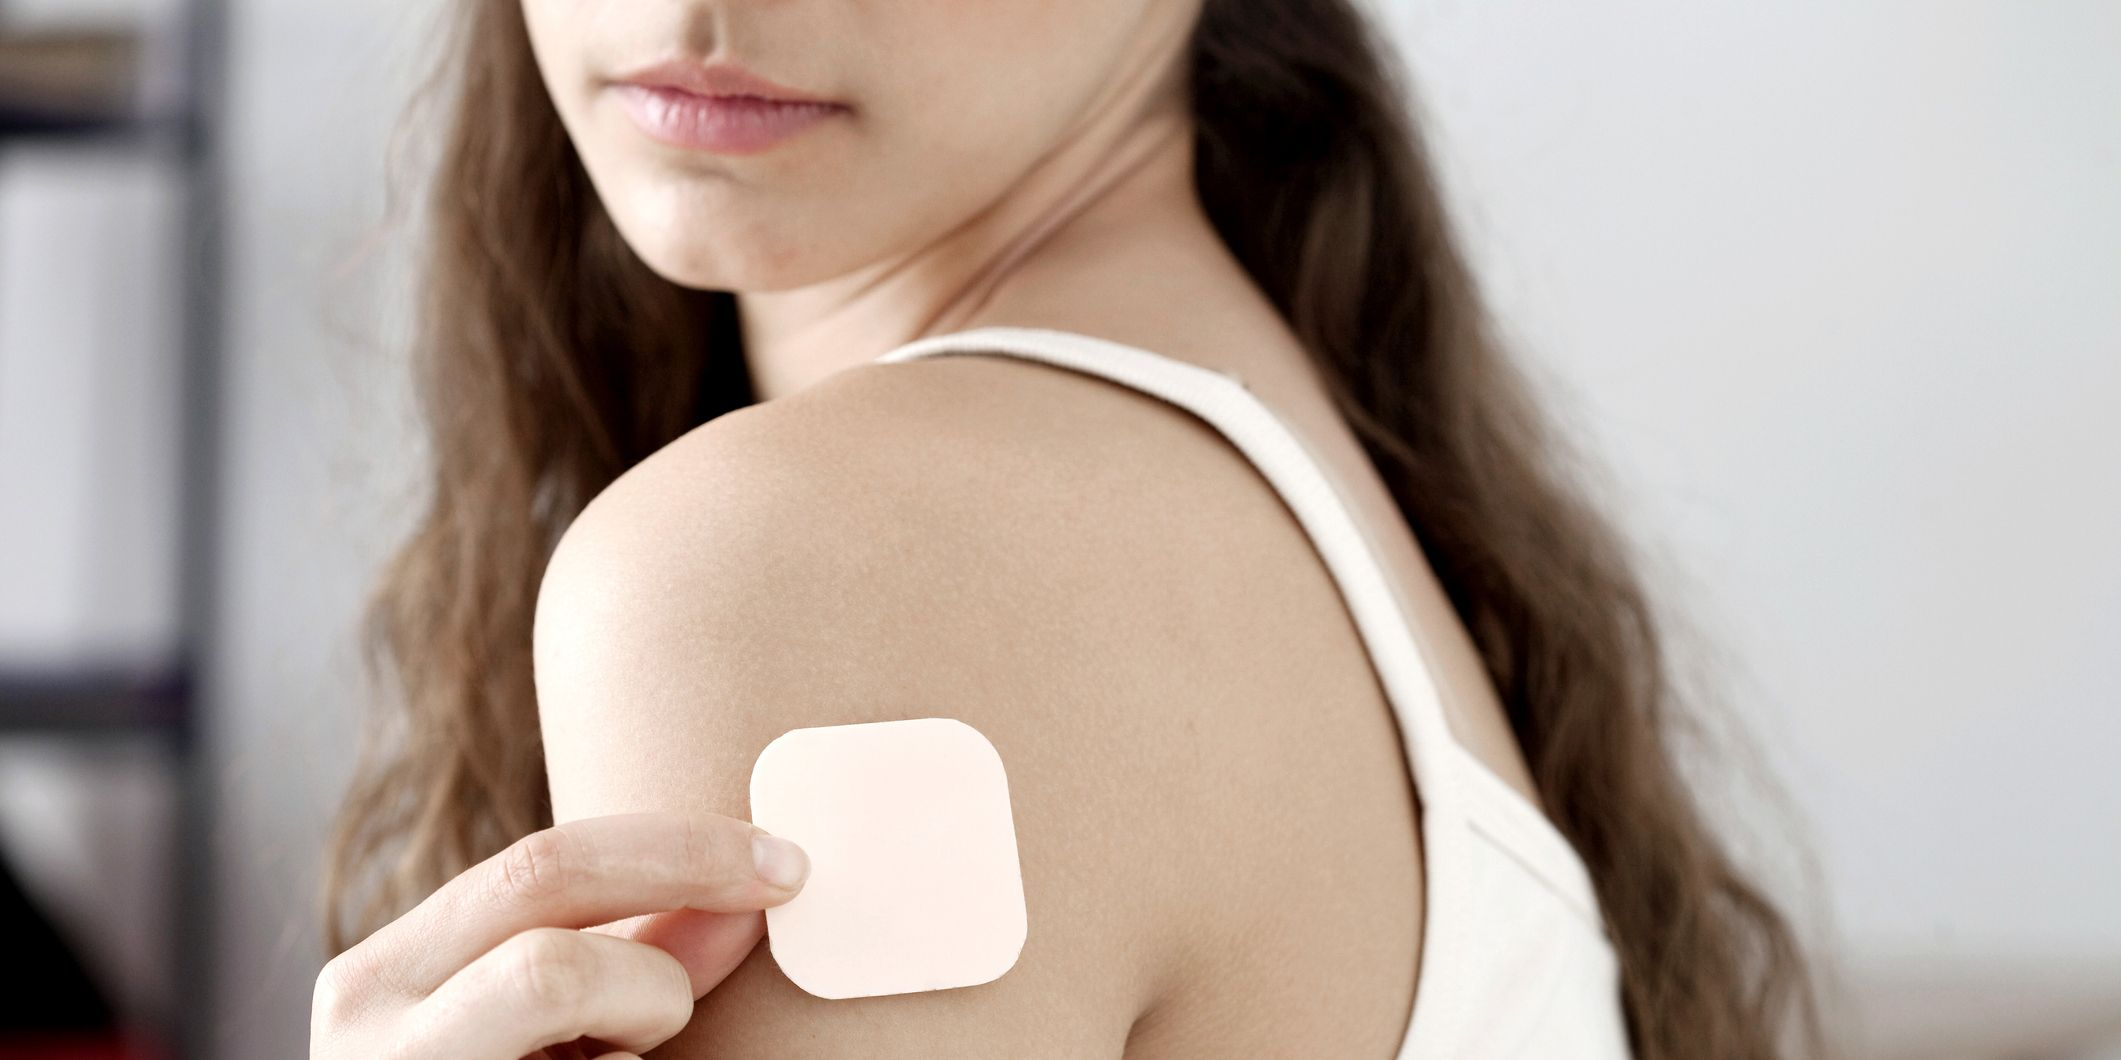 evra contraceptive patch